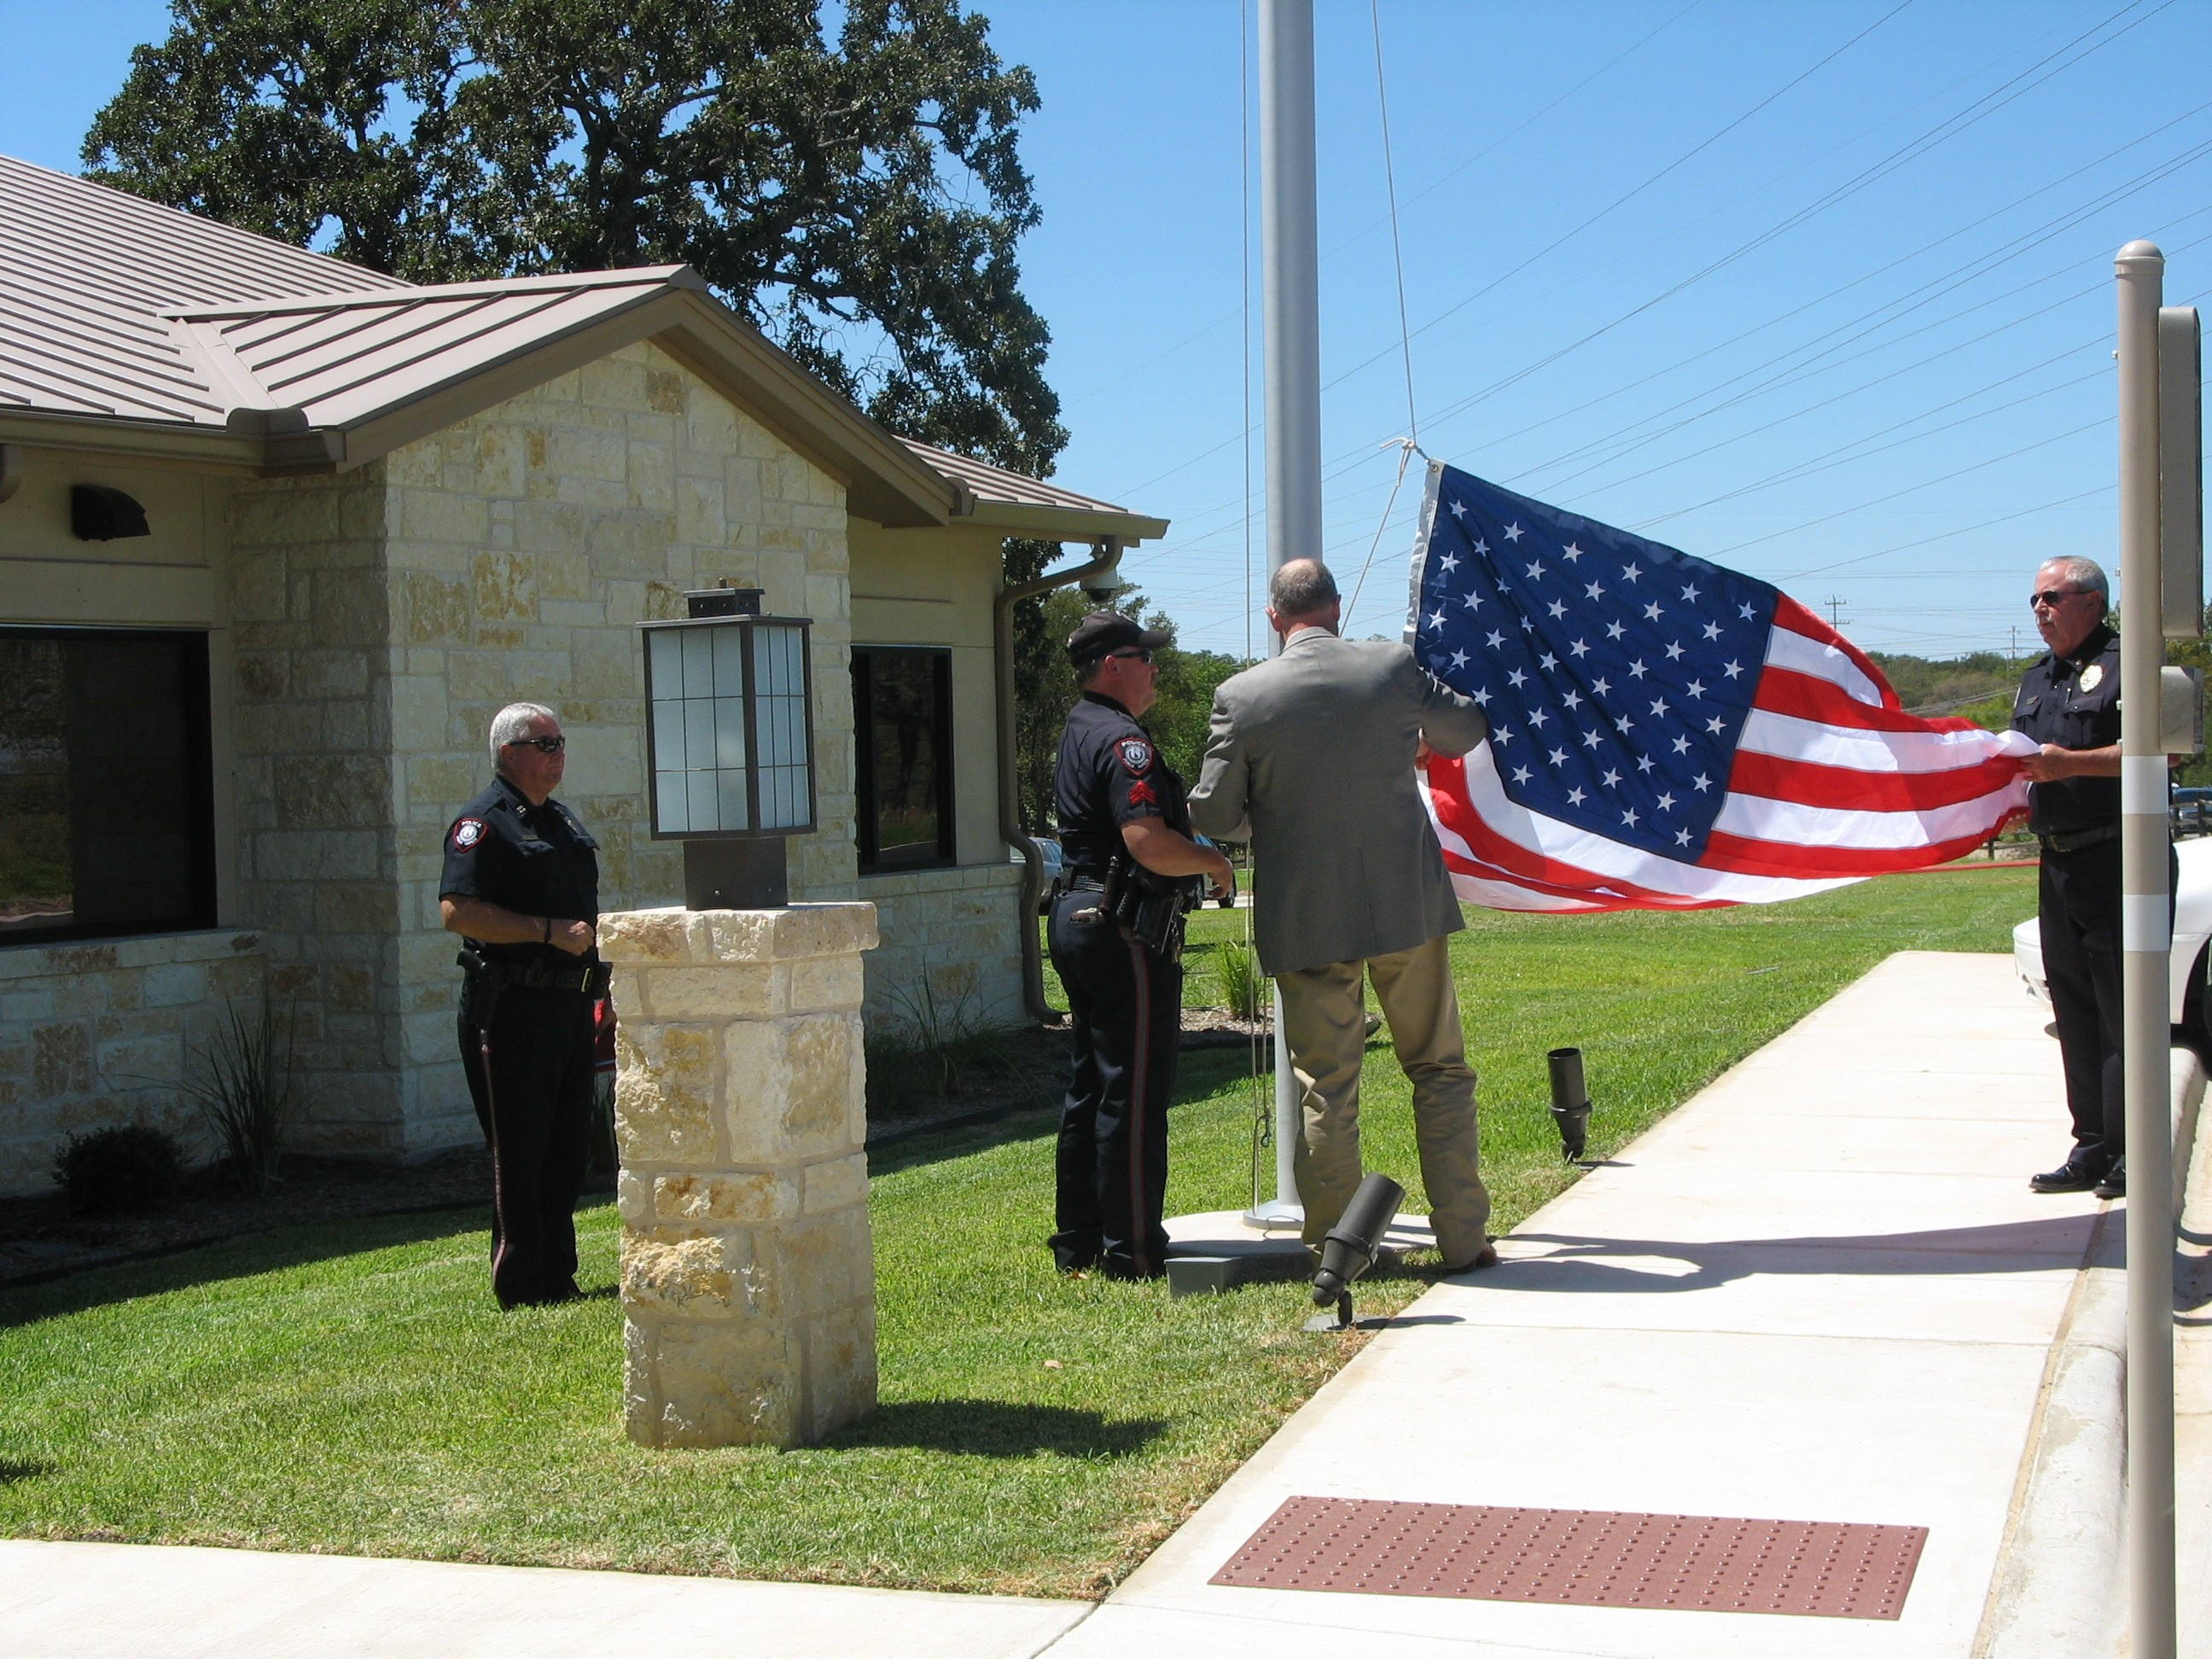 Officers and a man in a suit raising the American flag on a flag pole